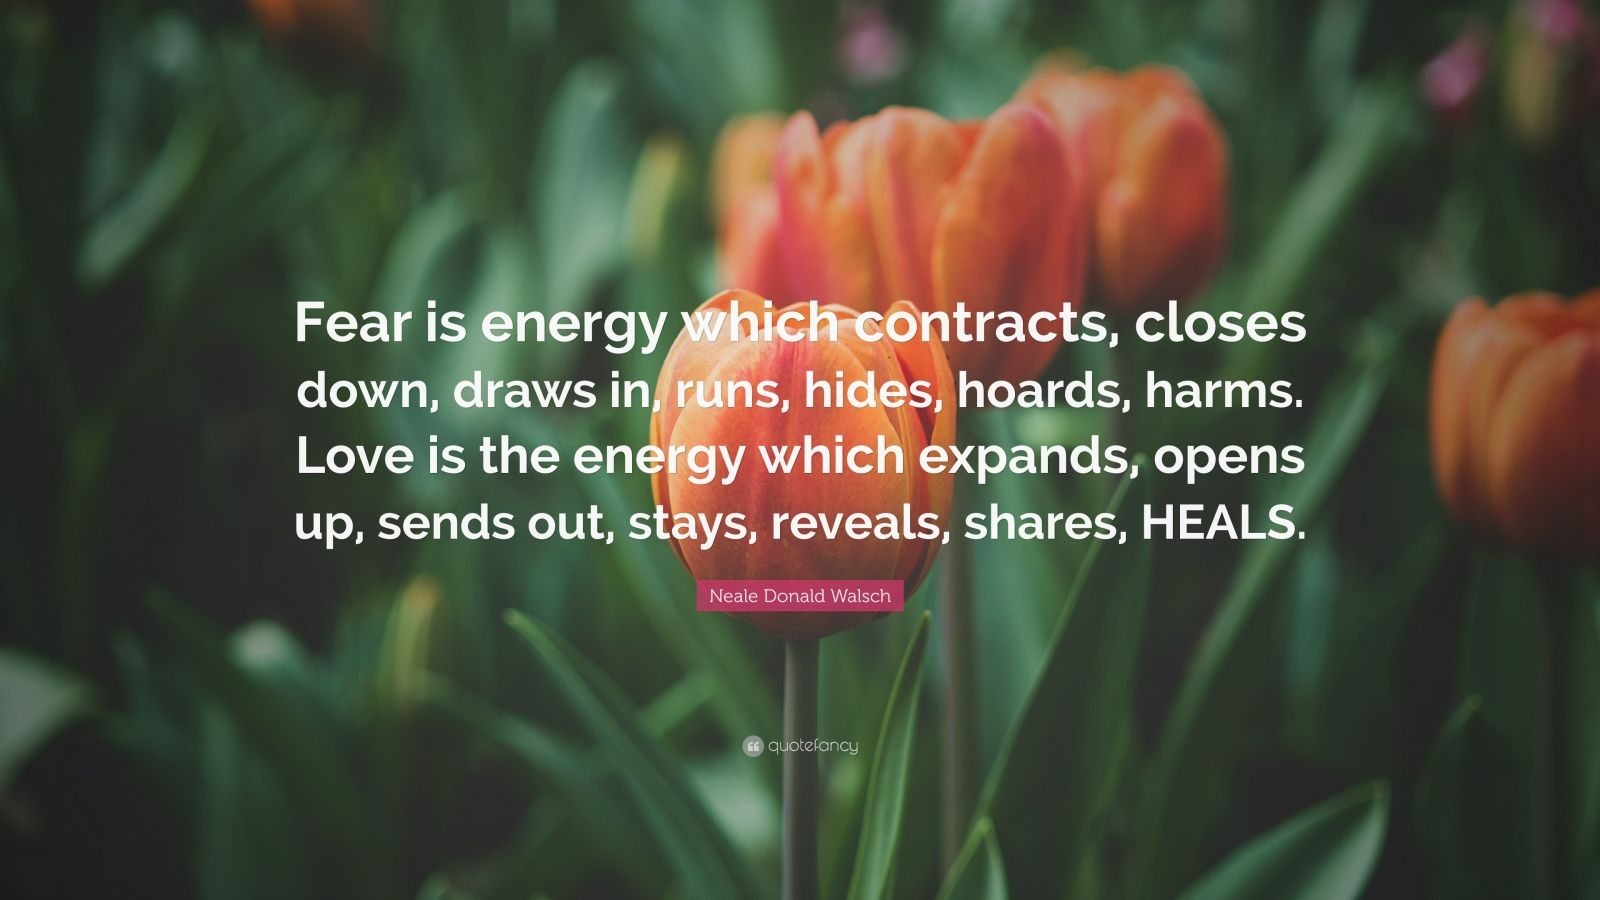 "Neale Donald Walsch Quote: ""Fear is energy which contracts, closes down, draws in, runs, hides, hoards, harms. Love is the energy which expands, opens up, sends out, stays, reveals, shares, HEALS."""